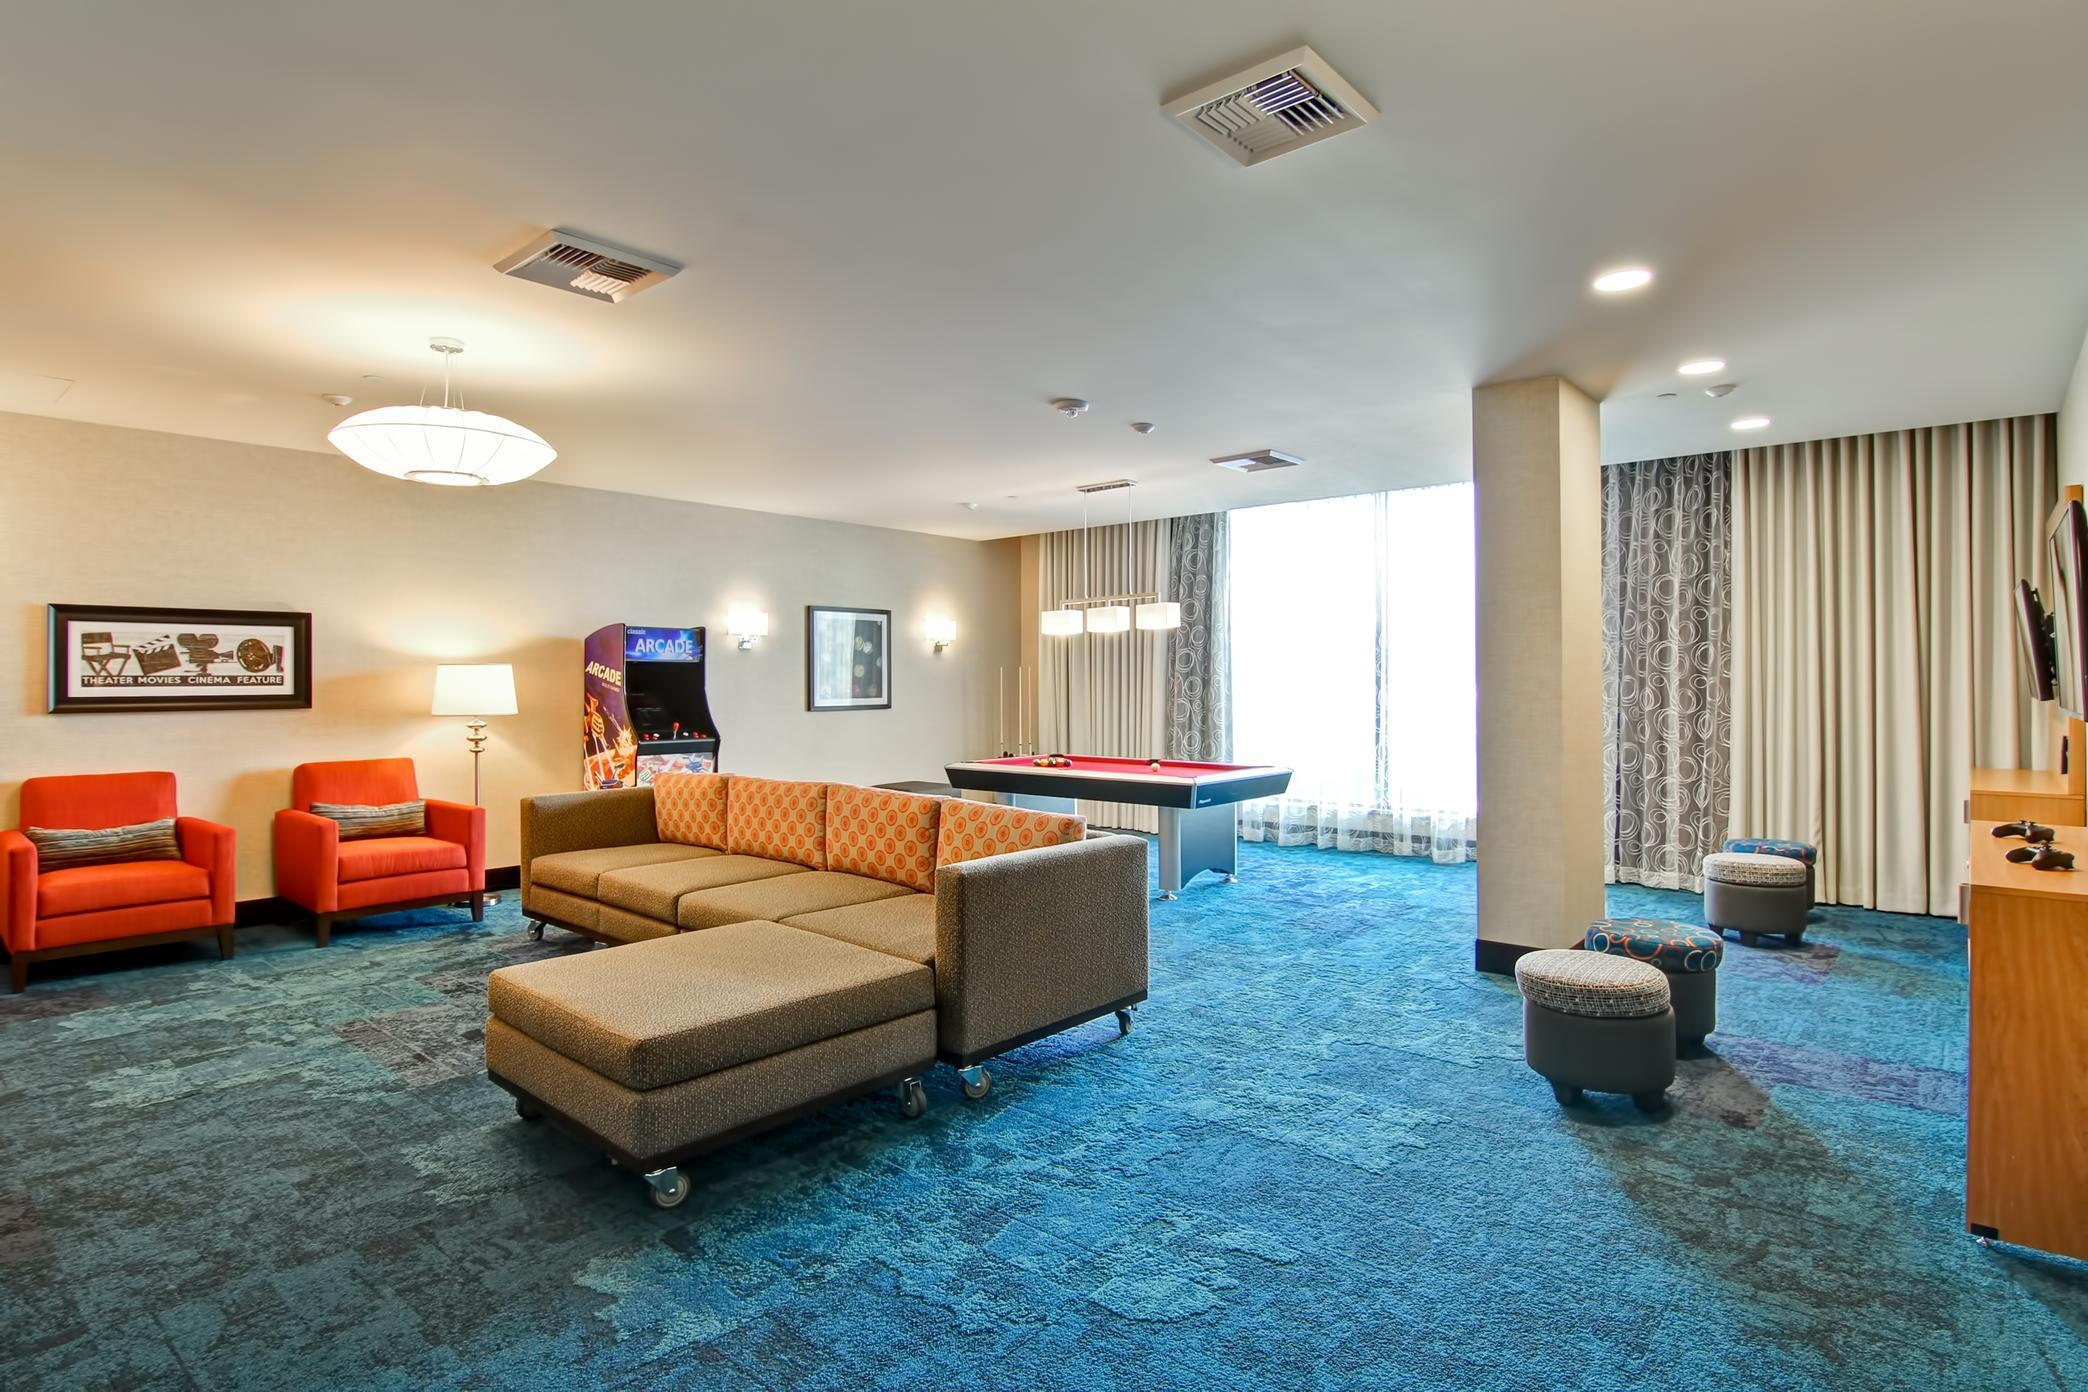 Homewood Suites by Hilton Seattle-Issaquah image 14